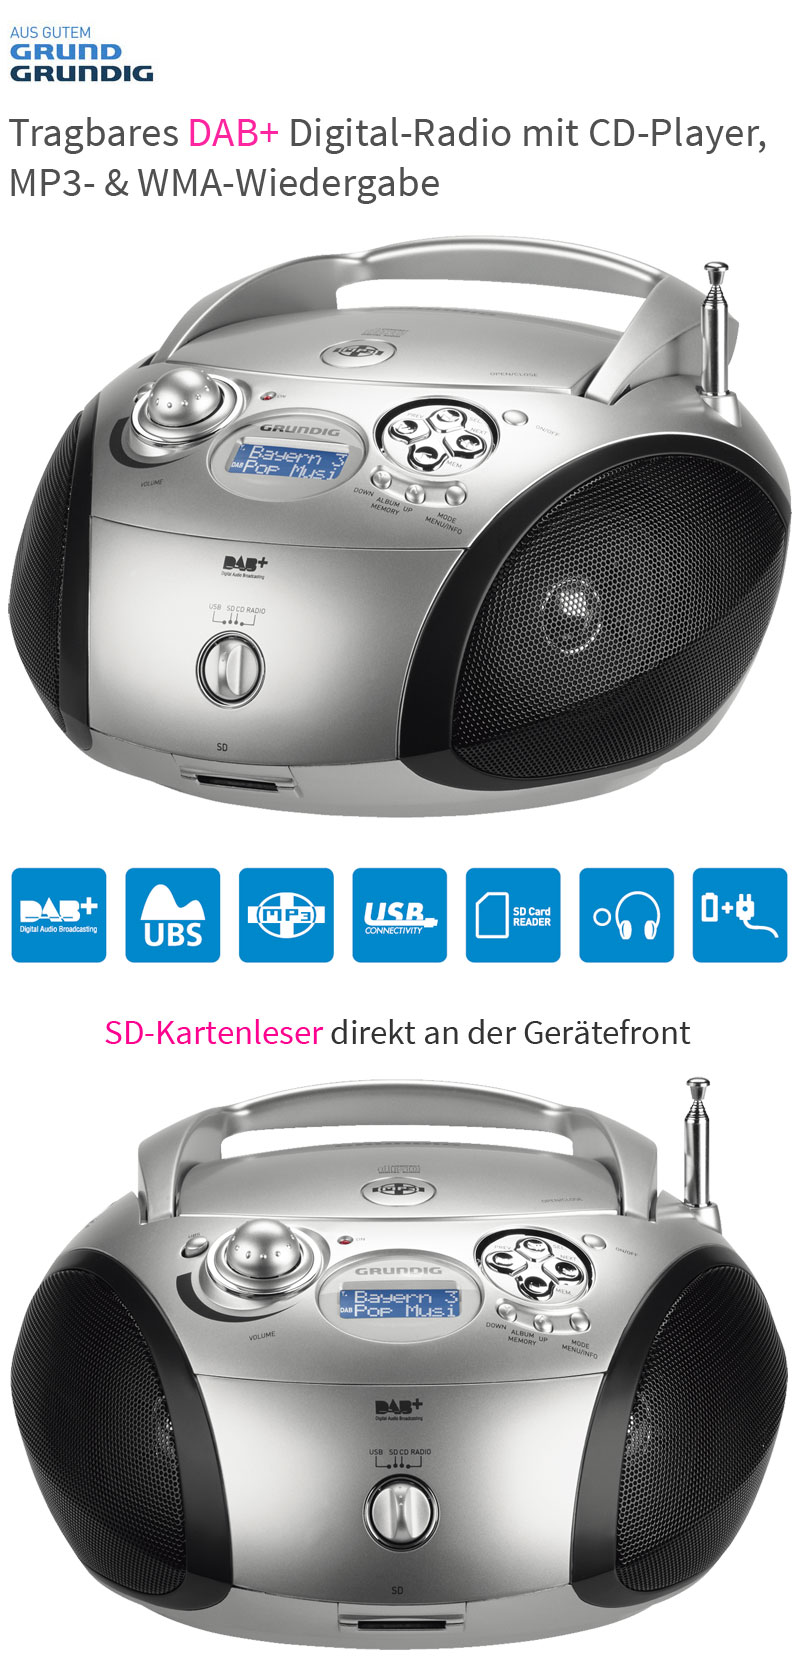 grundig rcd 1460 dab digitalradio mit cd player cd radio tragbar usb2 0 mp3 wma ebay. Black Bedroom Furniture Sets. Home Design Ideas